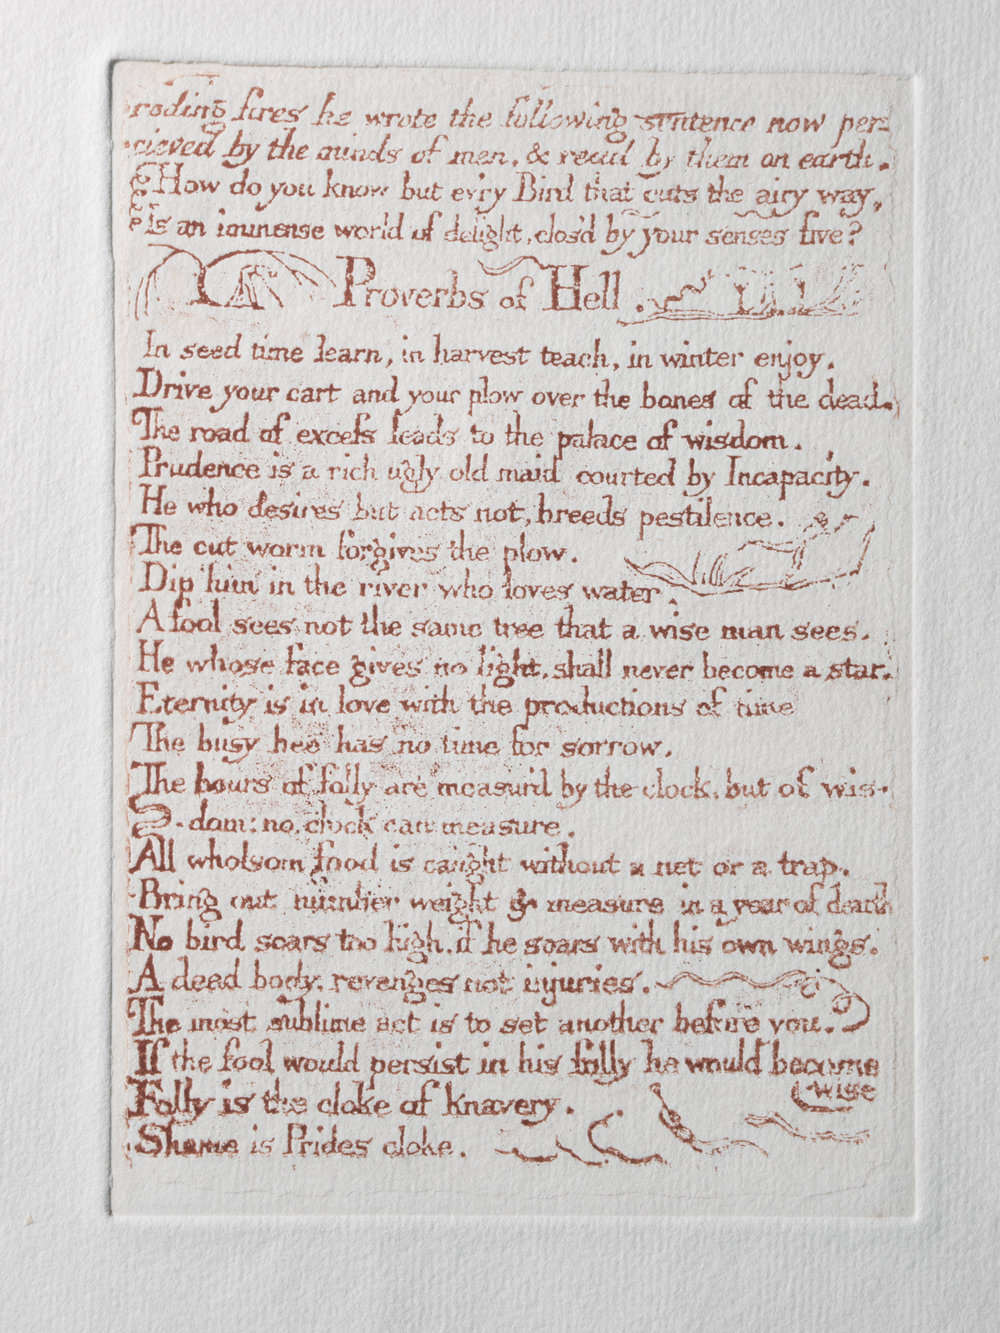 Copy of Proverbs of Hell